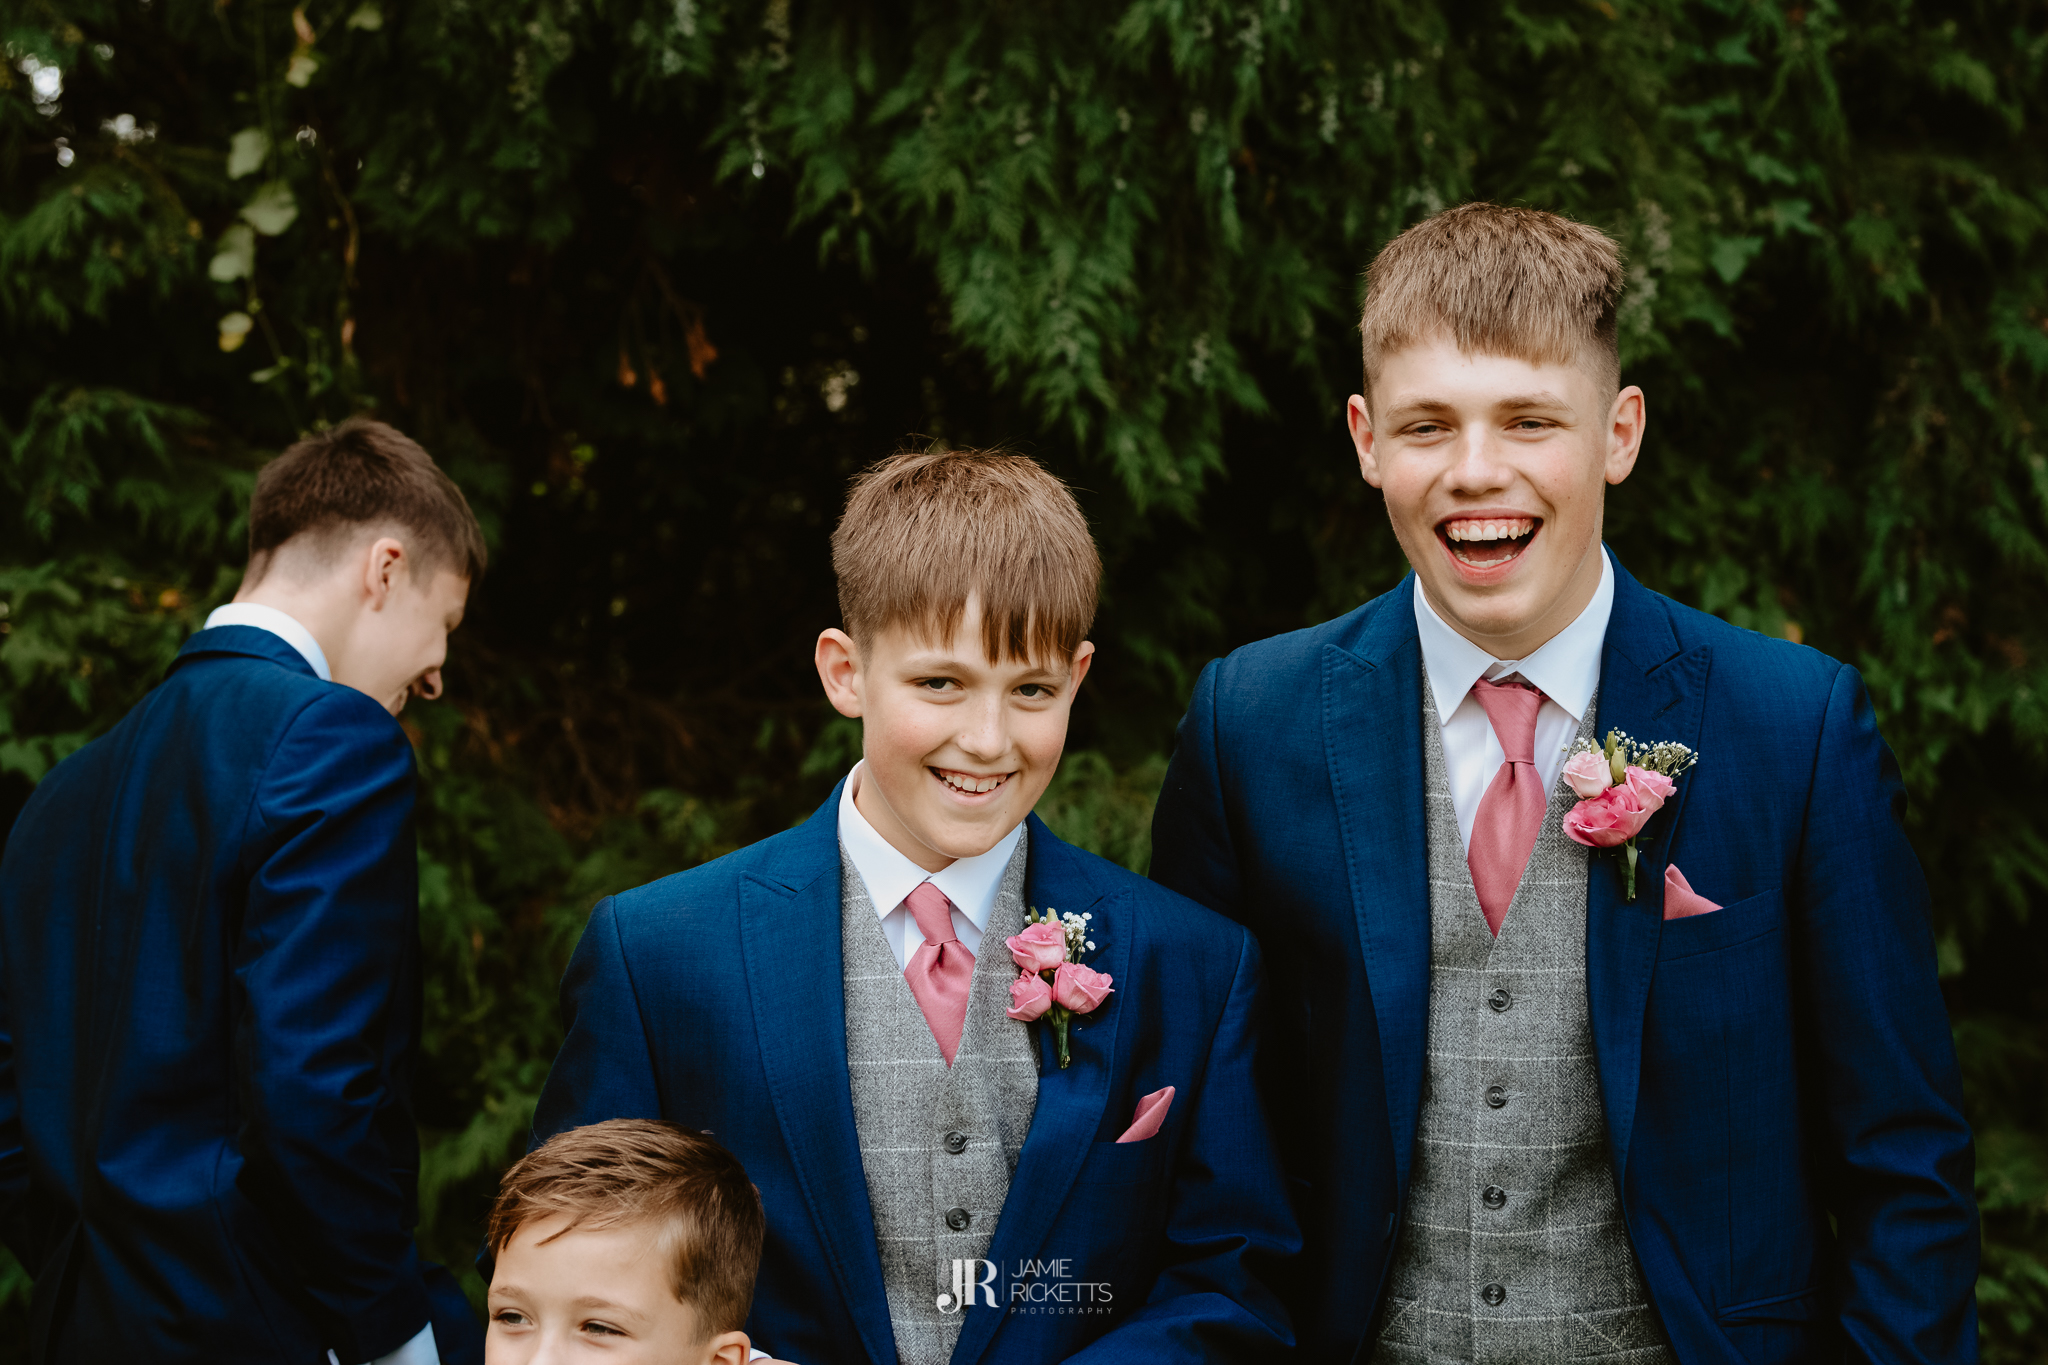 Wroxeter-Hotel-Wedding-Photography-In-Shropshire-By-Shropshire-Wedding-Photographer-Jamie-Ricketts-104.JPG